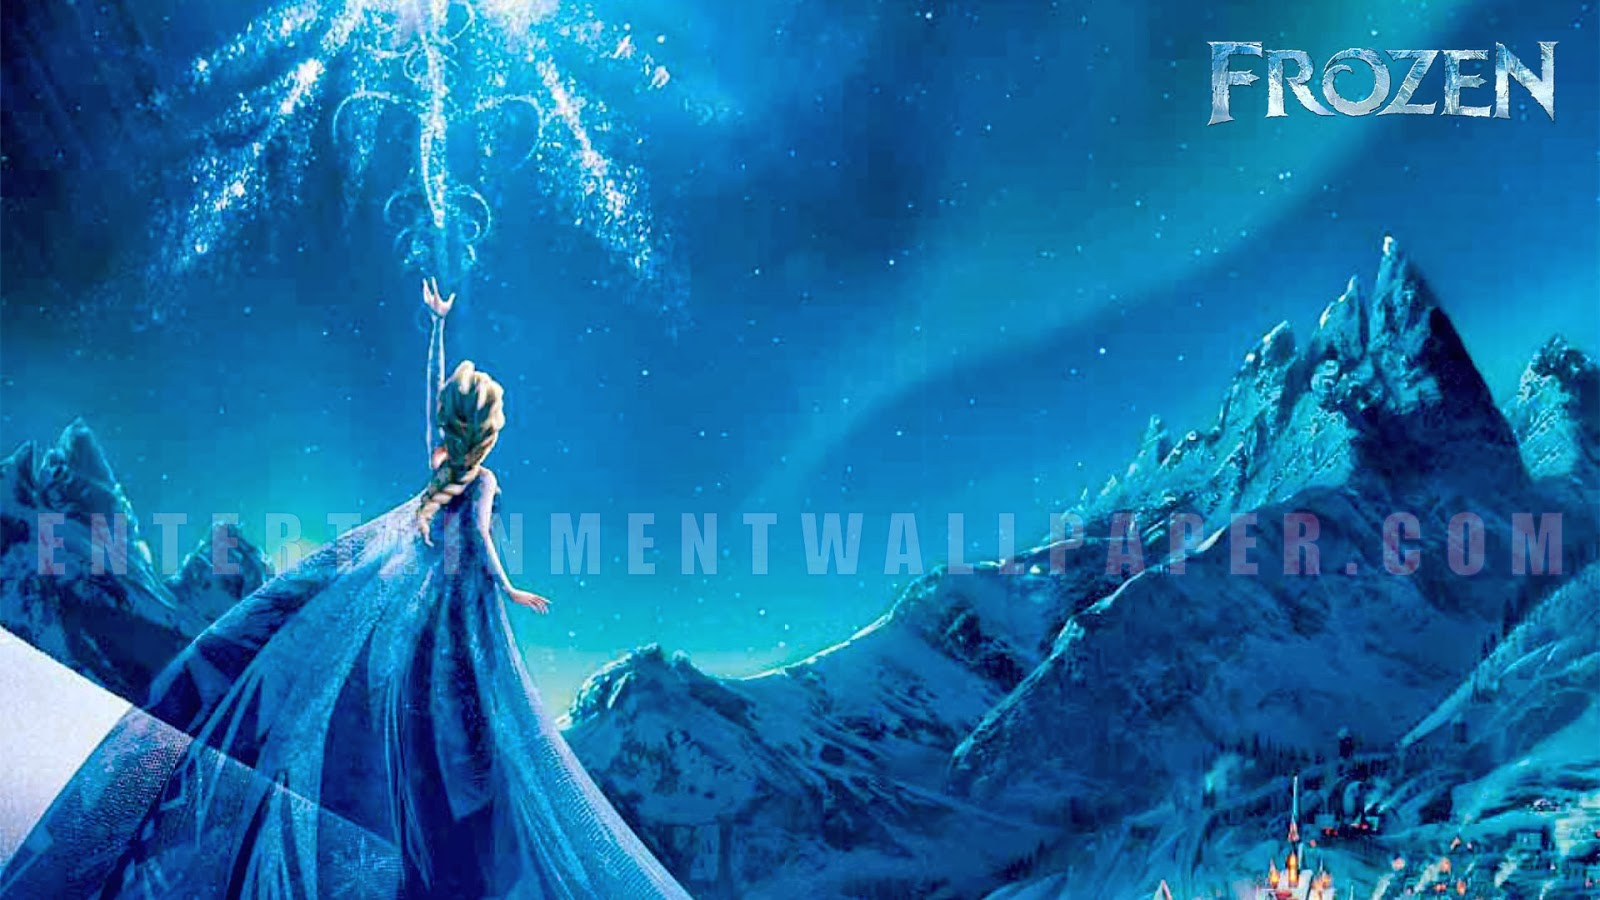 frozen hd wallpapers disnep 3d movie hd wallpapers blog